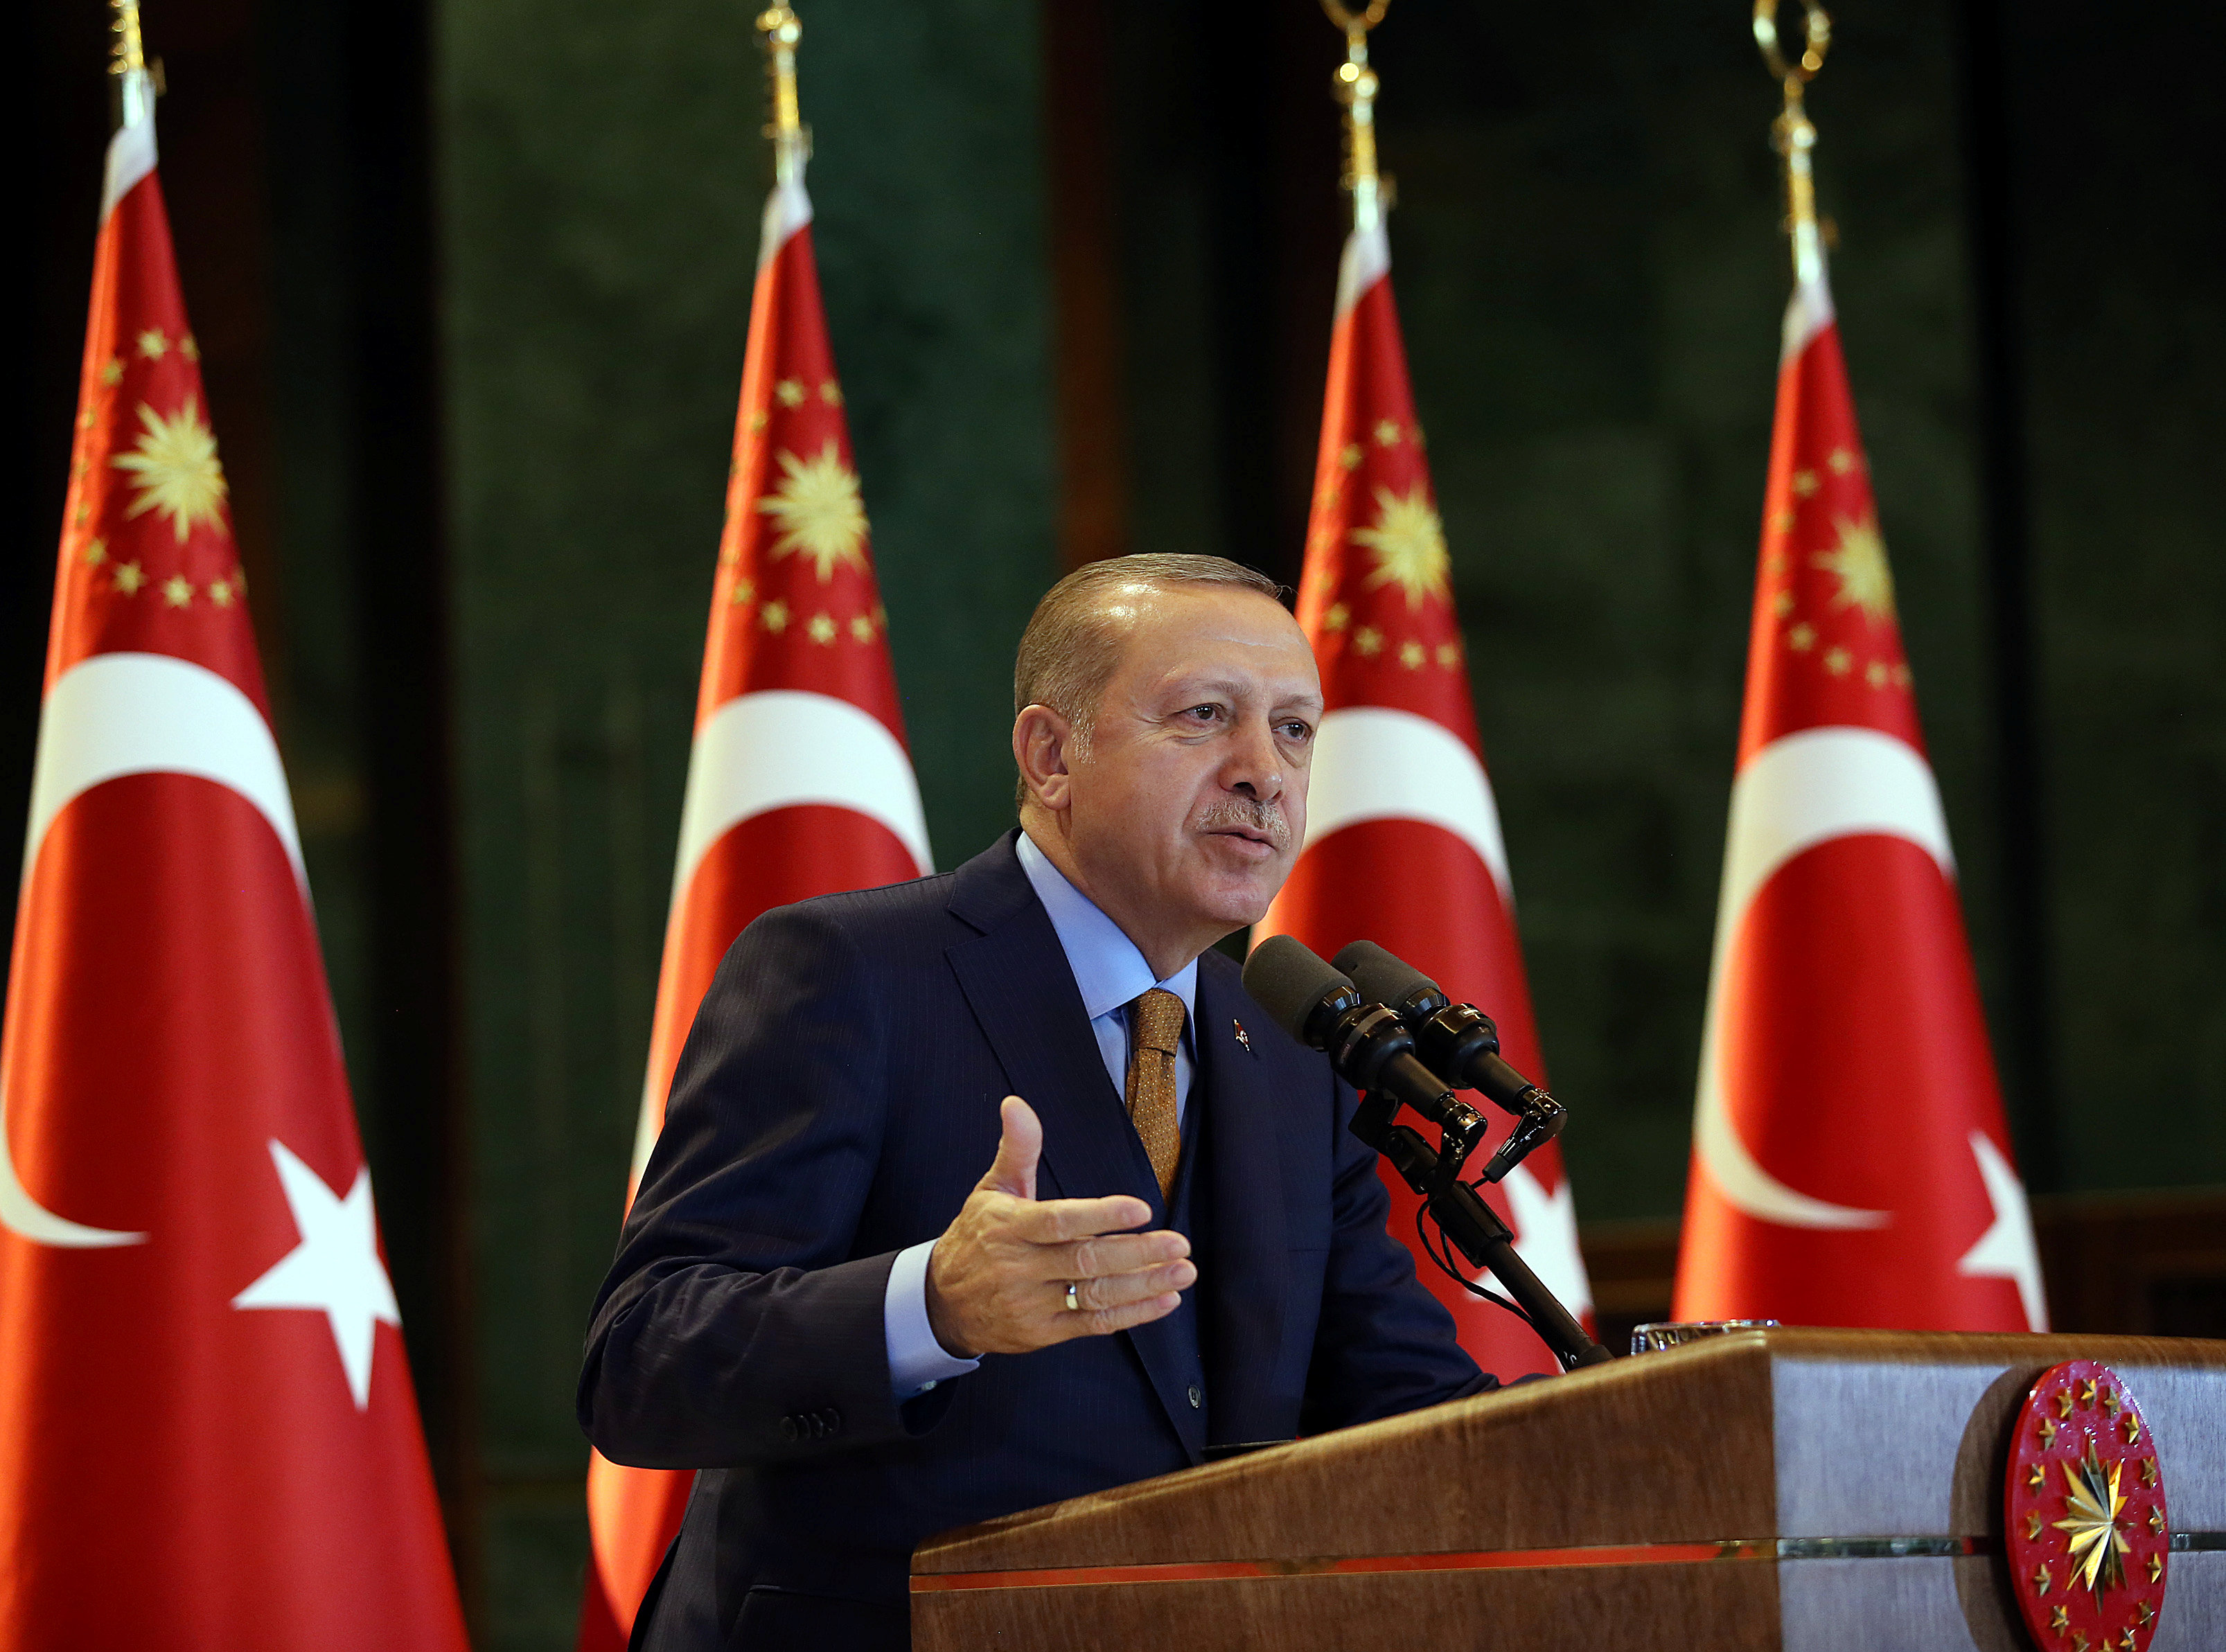 Turkish President Tayyip Erdogan speaks during a meeting at the Presidential Palace in Ankara, Turkey,